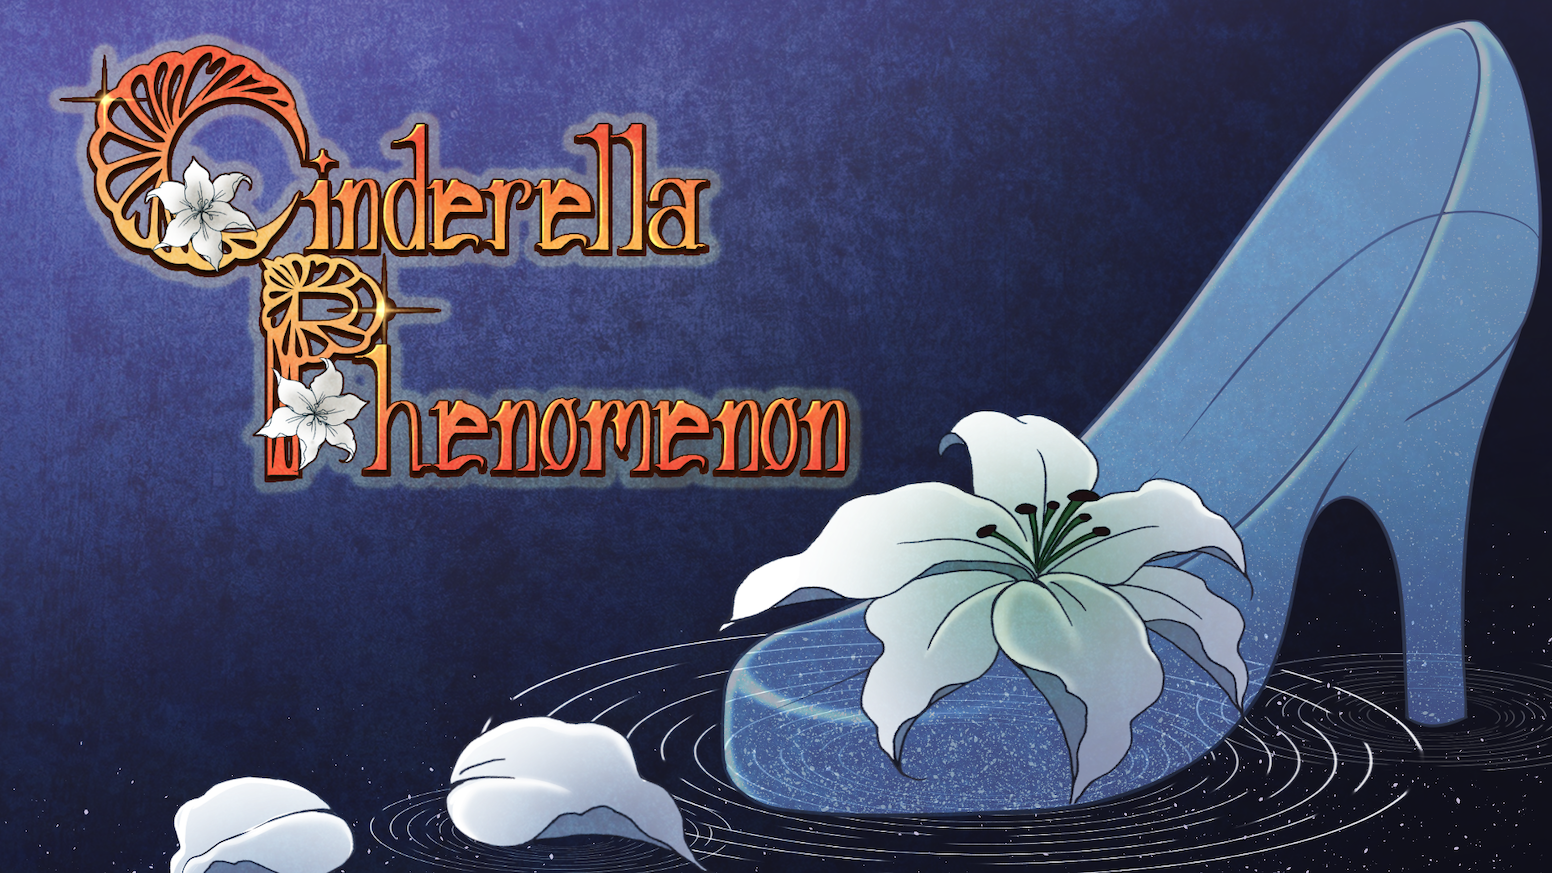 Cinderella Phenomenon is a free otome game inspired by various popular fairy tales.